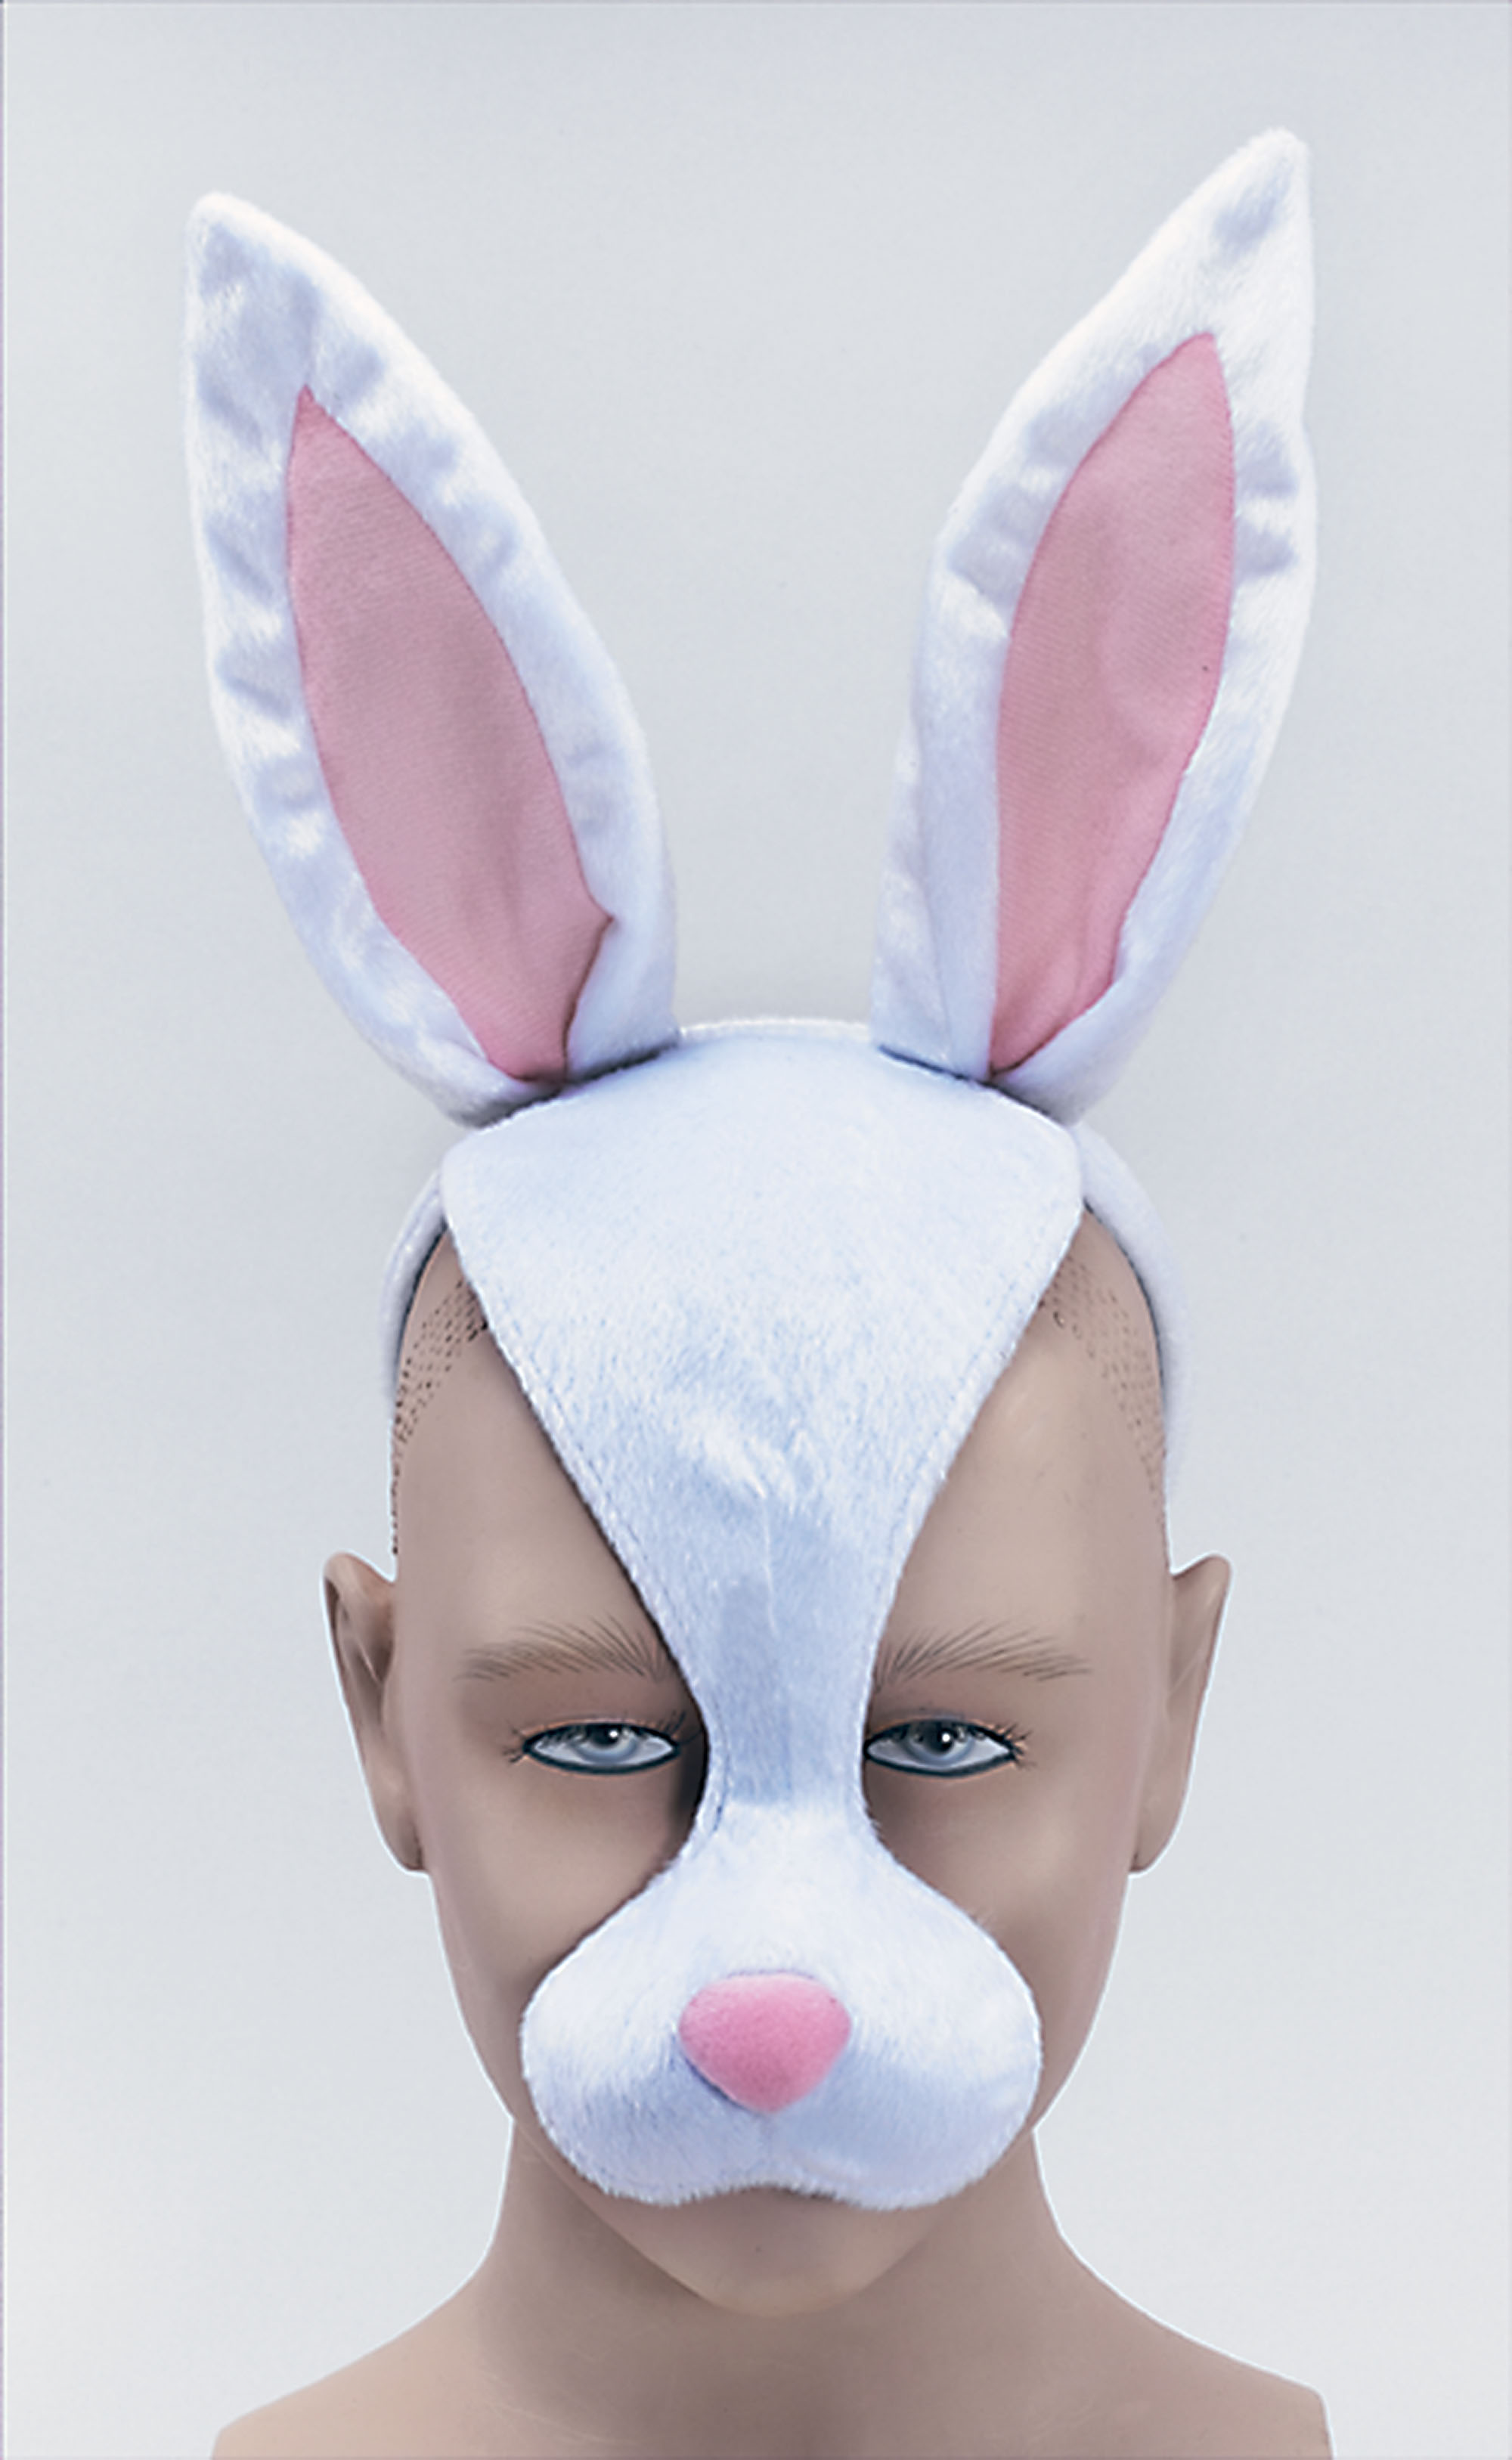 64 Free kids face masks templates for Halloween to print |Rabbit Face Mask